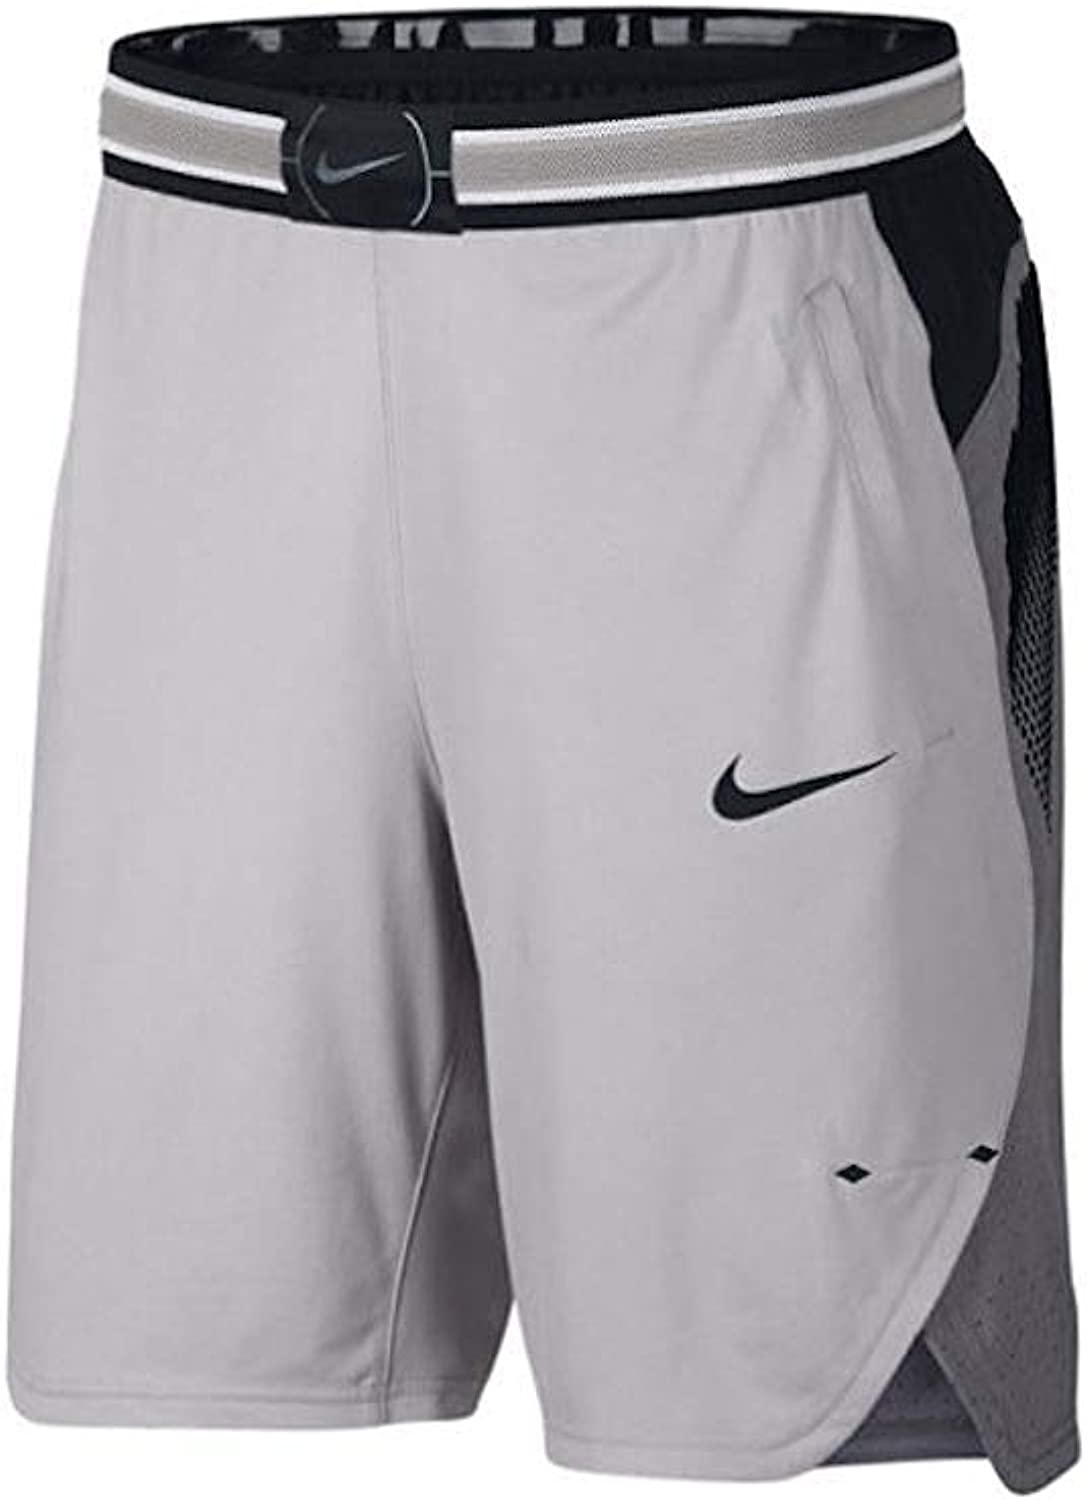 Nike Aeroswift Basketballshort Herren Shorts